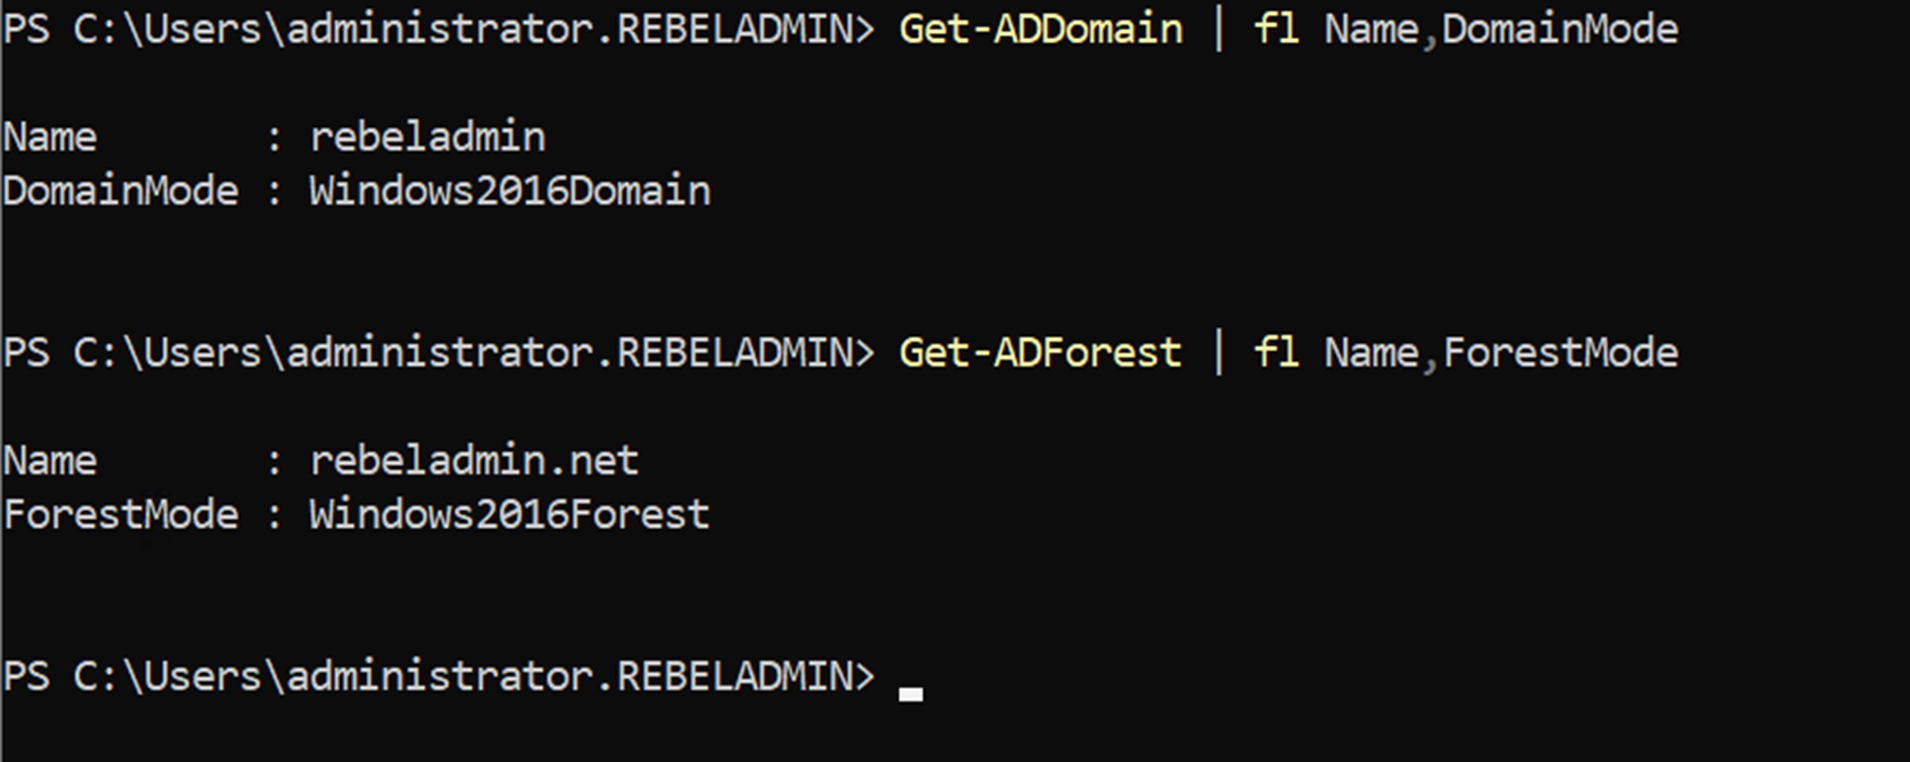 verify new domain and forest functional levels